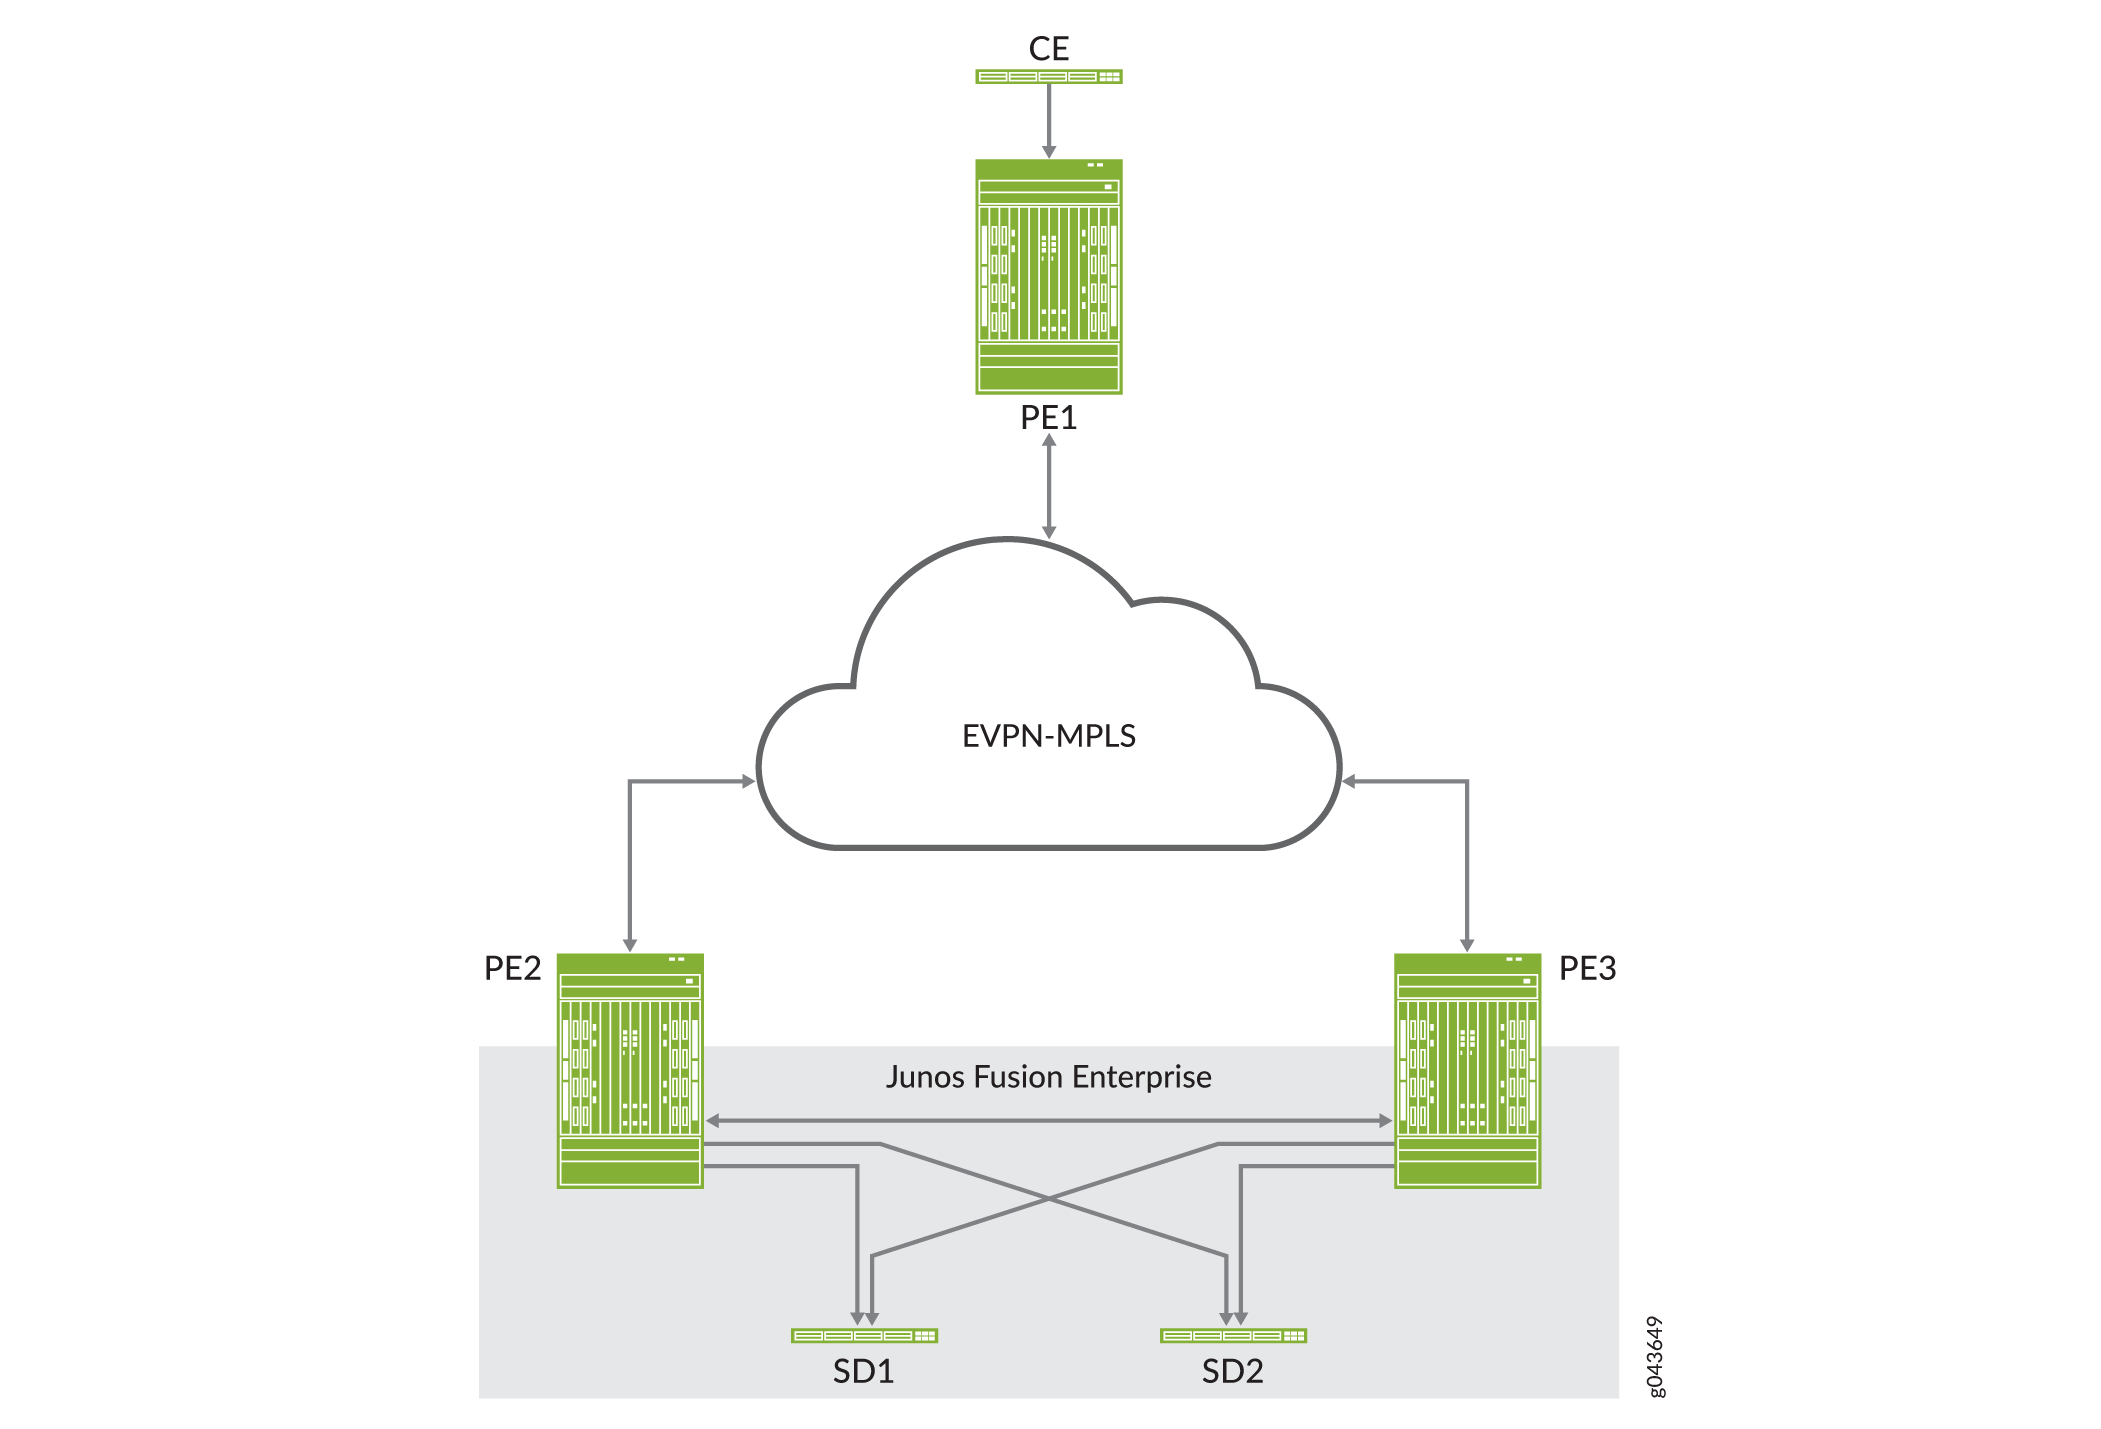 EVPN-MPLS Interworking with Junos Fusion Enterprise